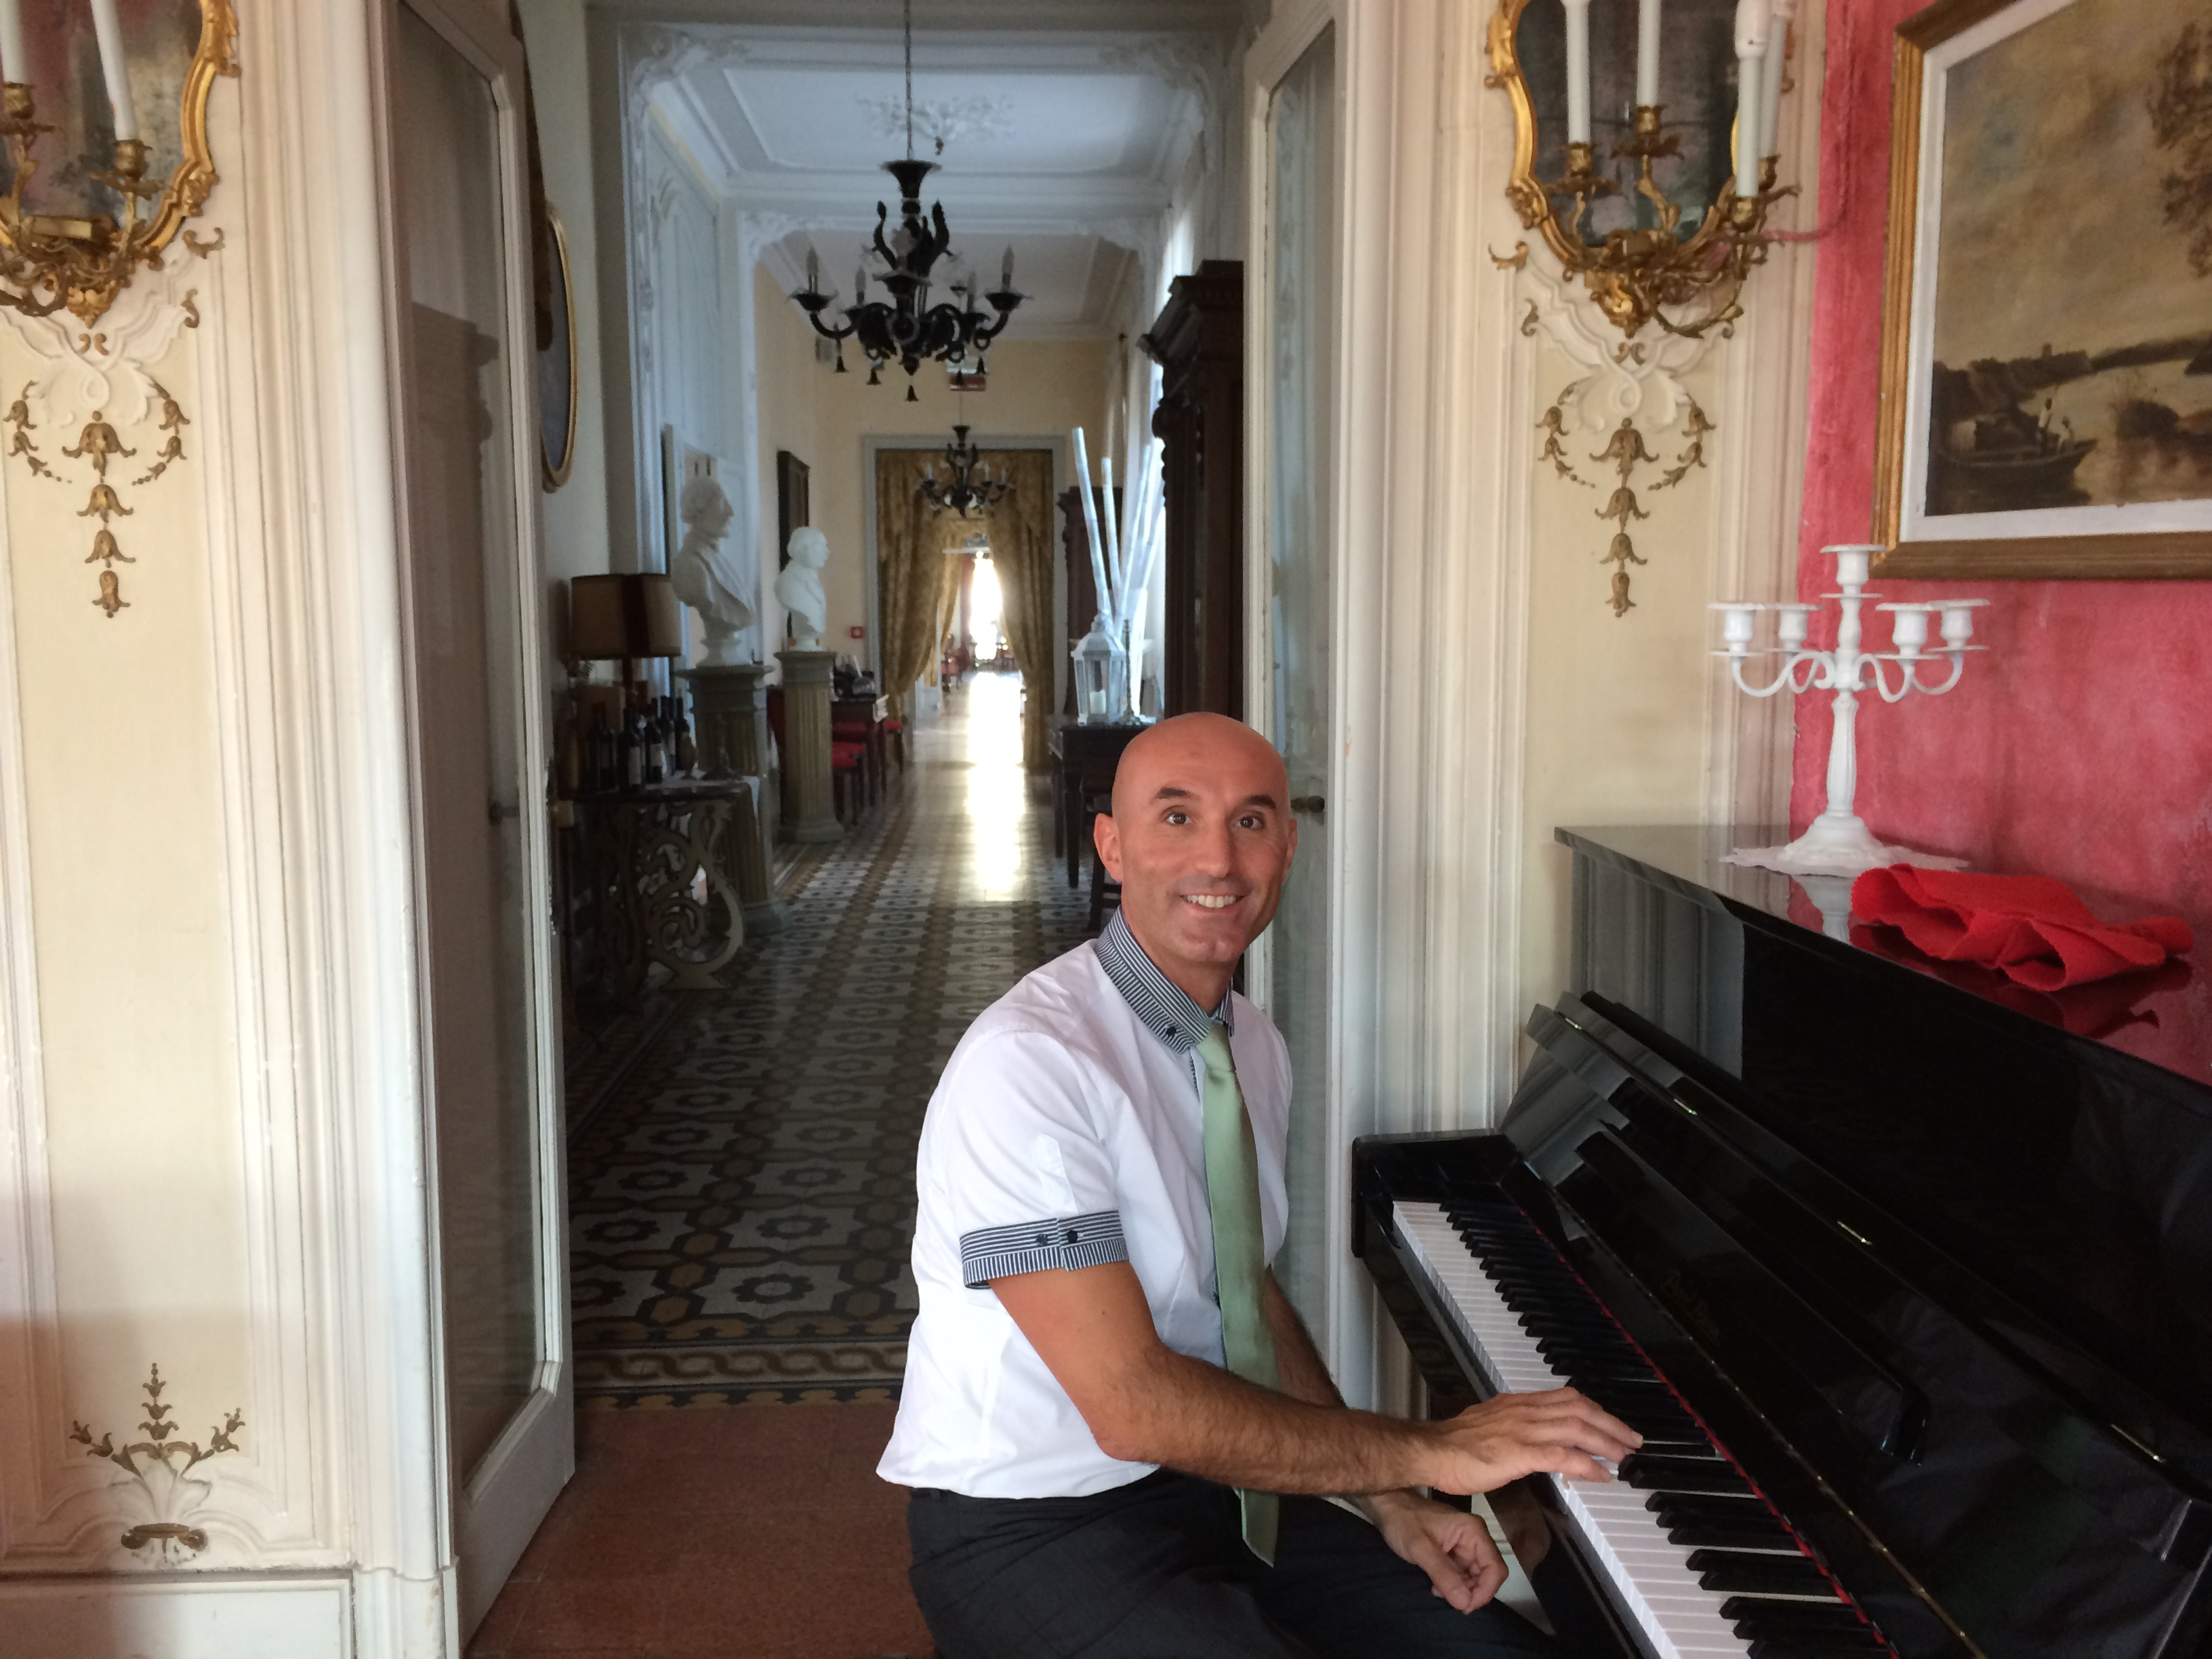 THE PIANIST LIVE VILLA BORGHI